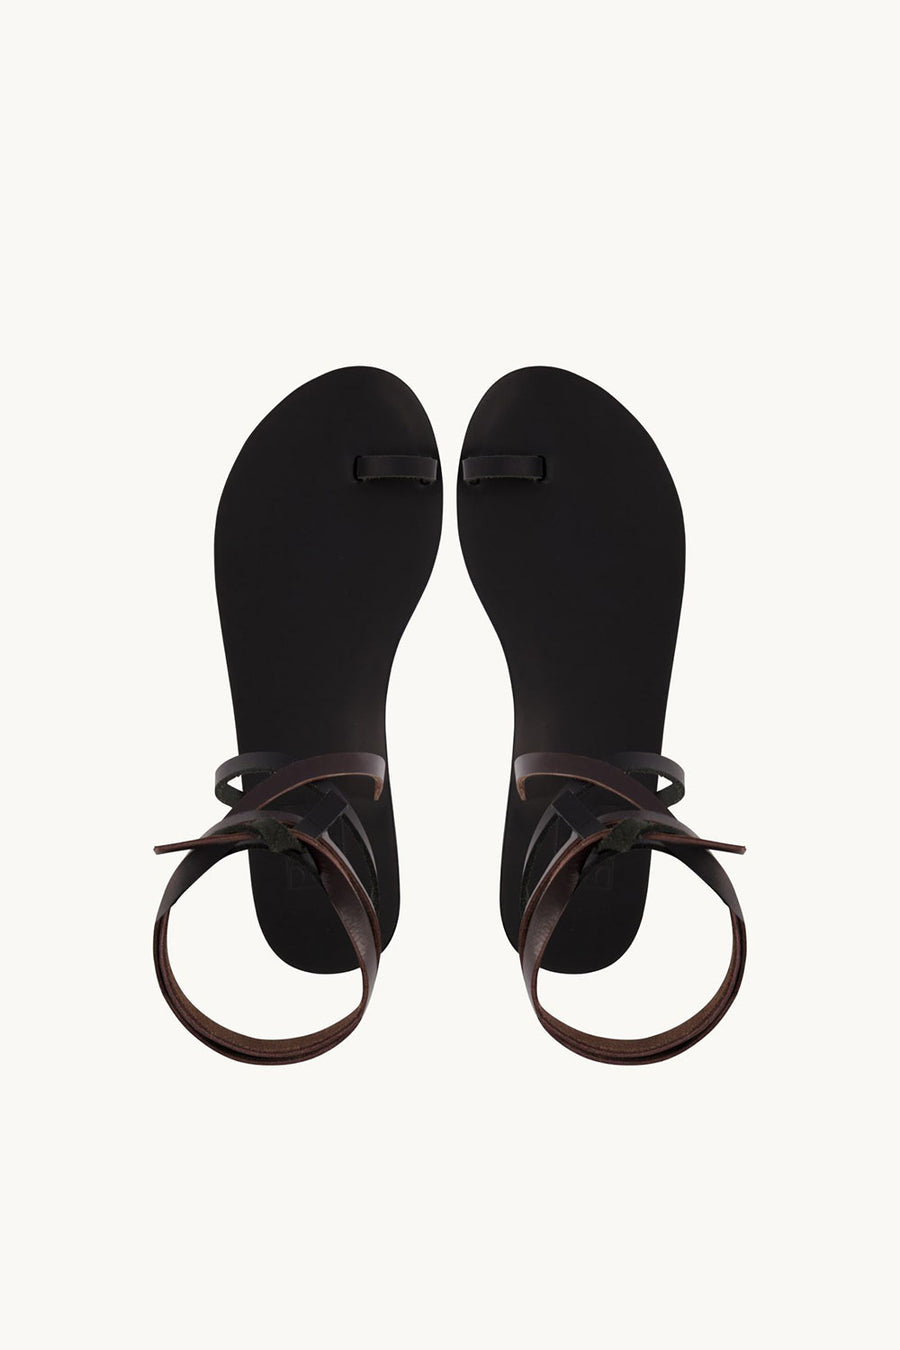 HERA SANDAL | BLACK | MARLE NZ | Footwear NZ | Black Box Boutique Auckland | Womens Fashion NZ